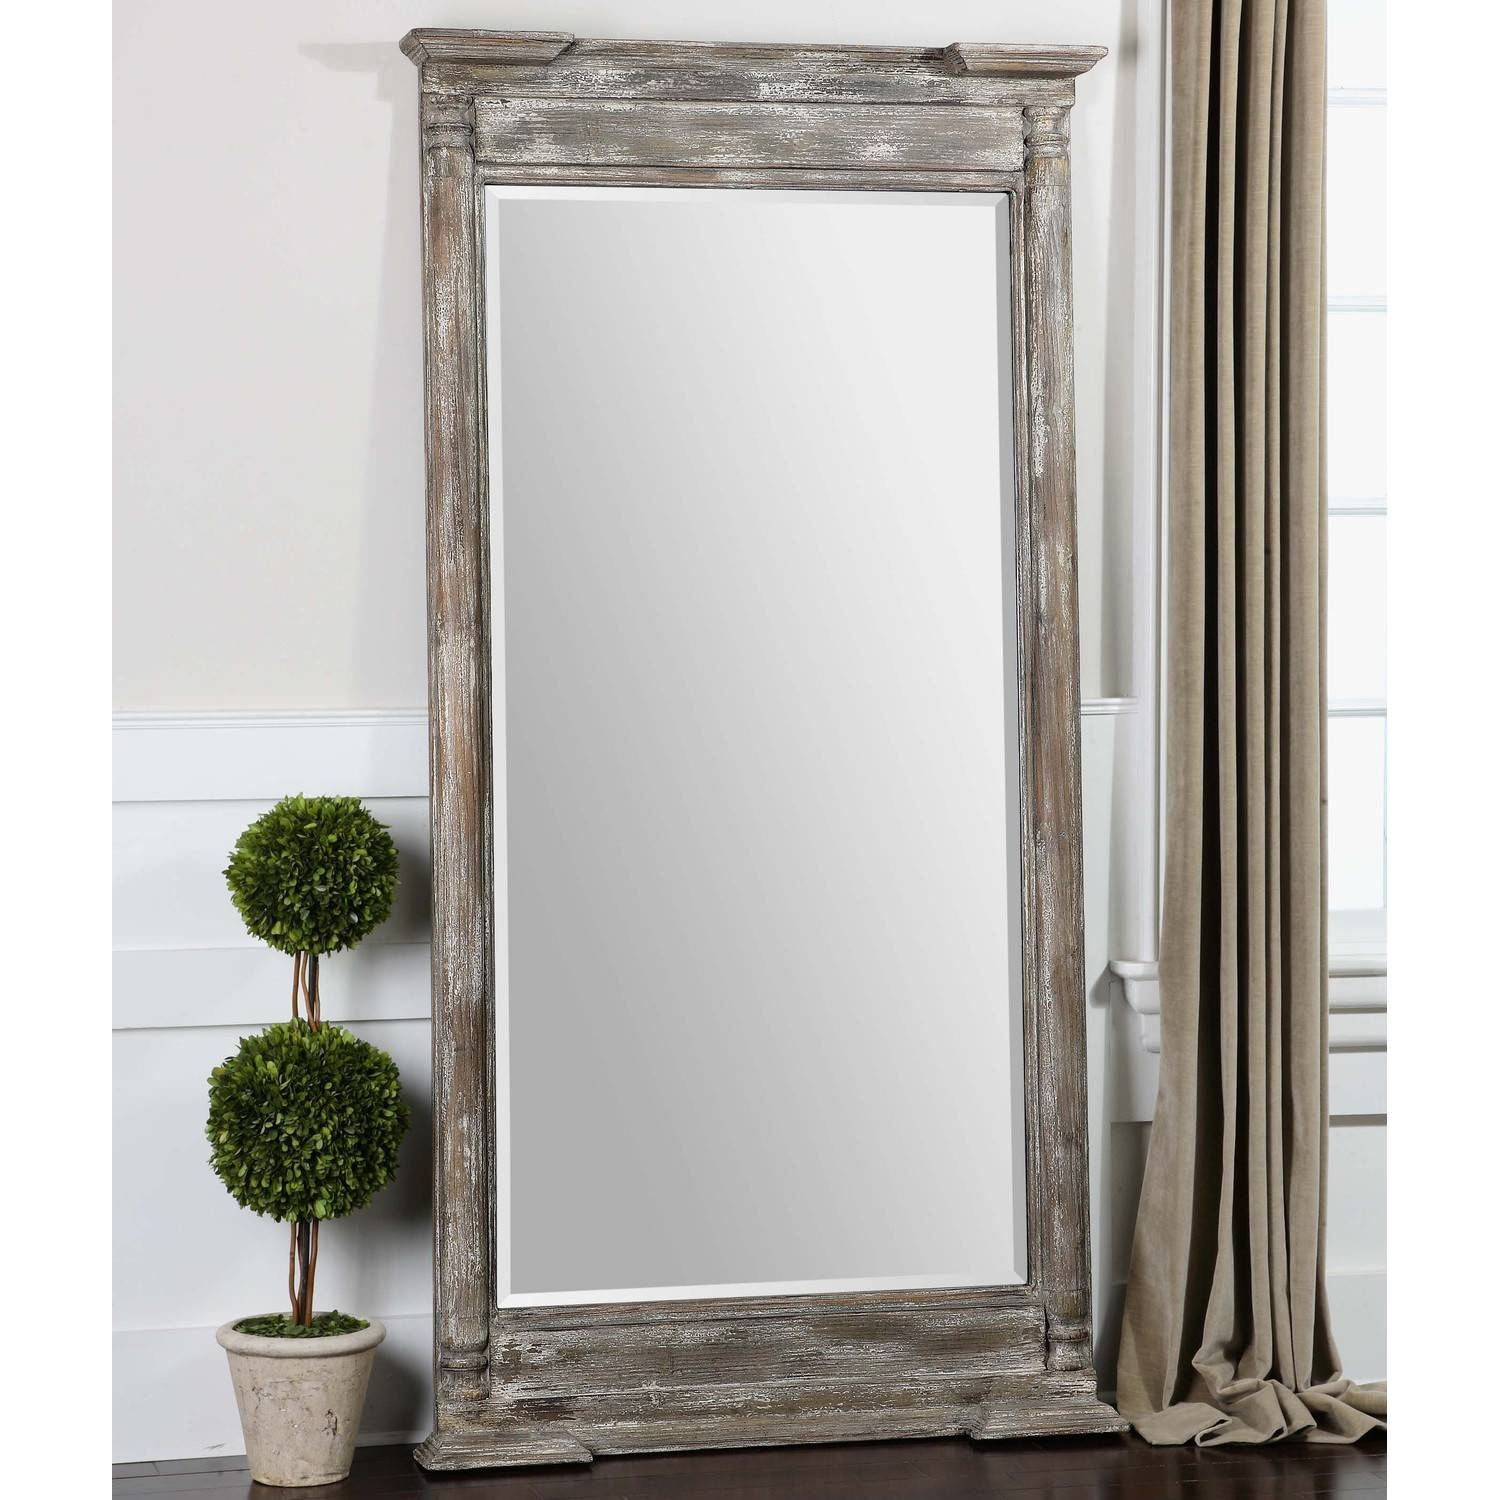 Decorative Floor Mirrors Cheap | Floor Decoration intended for Decorative Full Length Mirrors (Image 5 of 25)